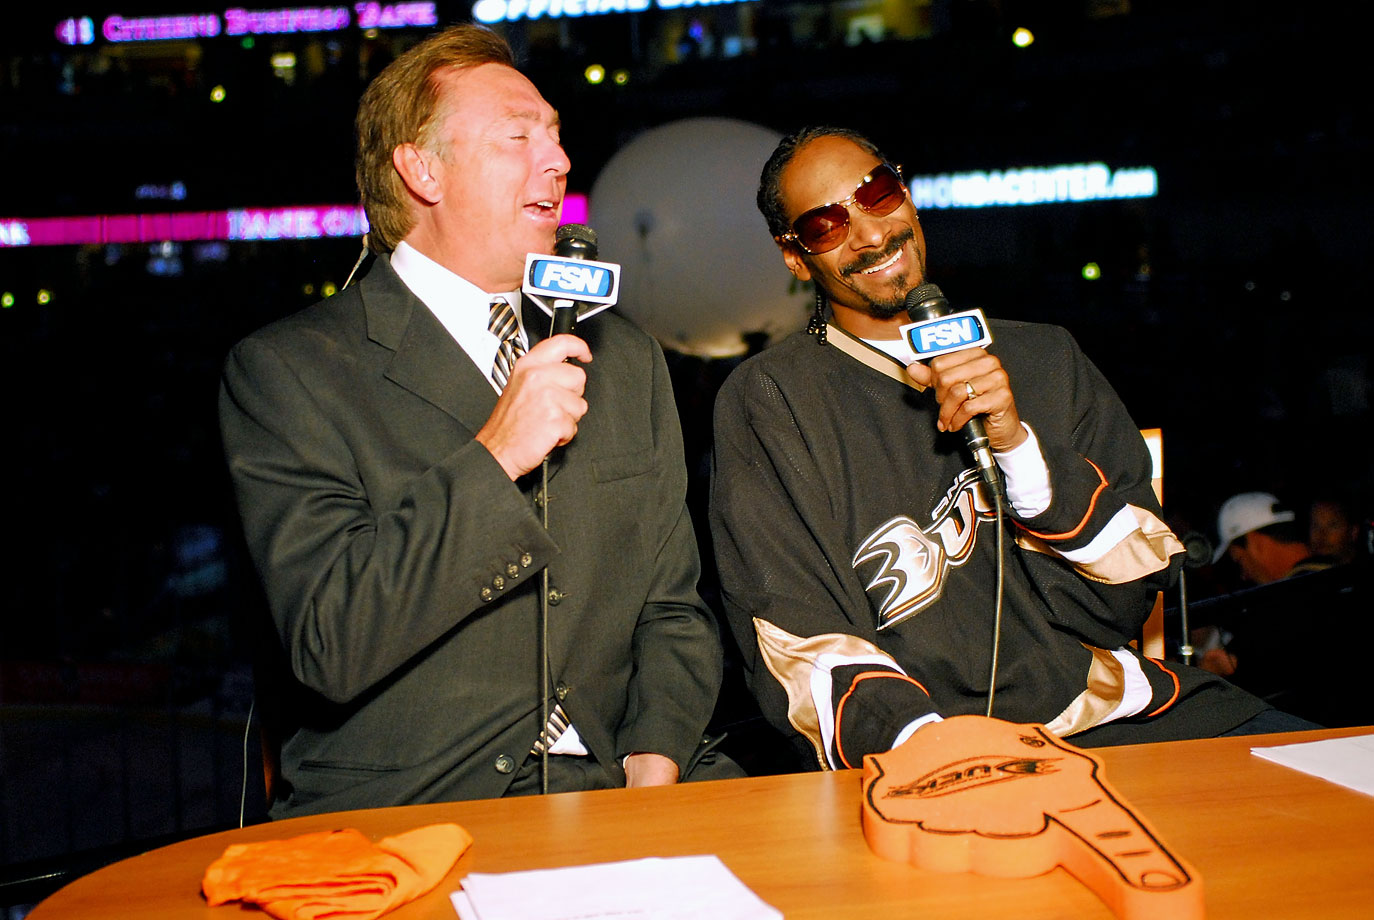 Snoop Dogg joins broadcaster Bill Macdonald in the booth during Game Five of the Western Conference Quarterfinals between the Anaheim Ducks and Minnesota Wild on April 19, 2007 at the Honda Center in Anaheim, Calif.